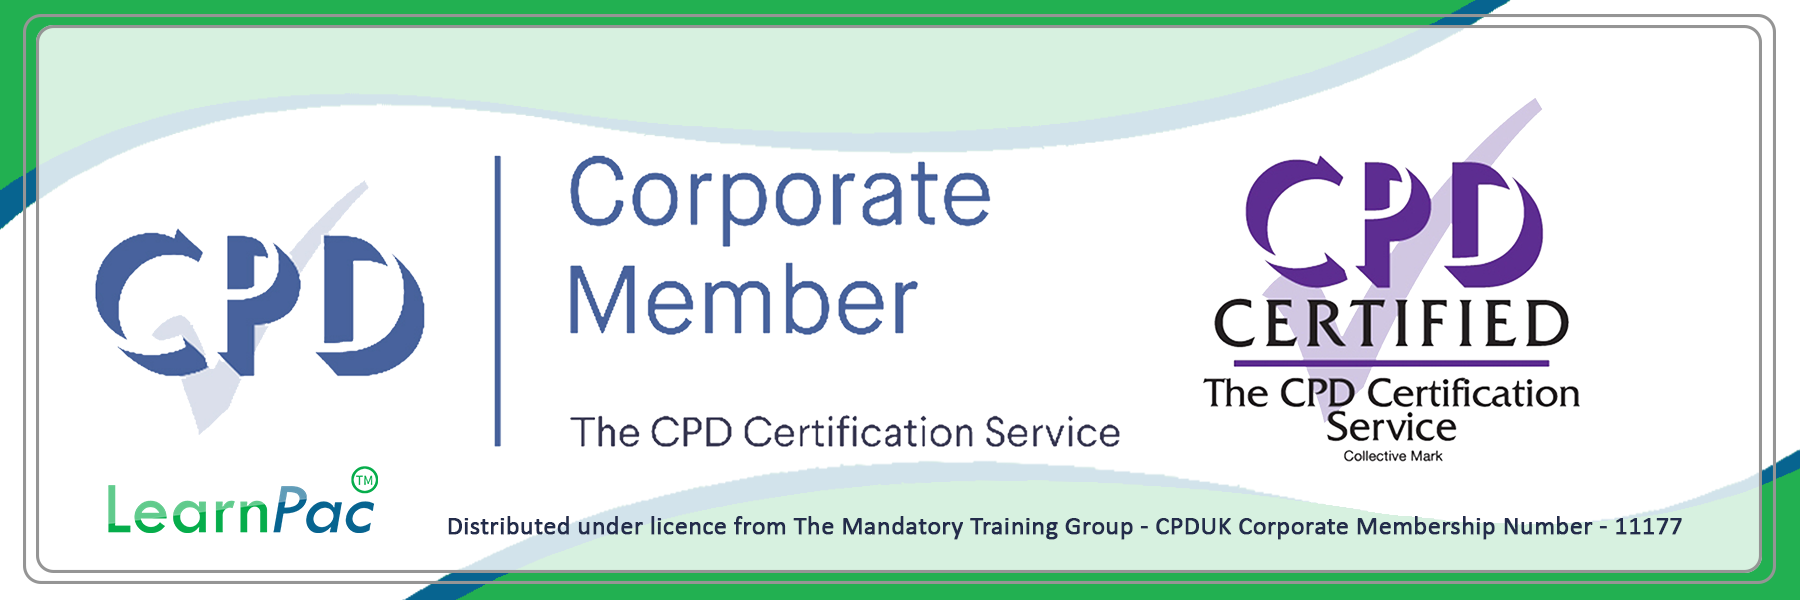 Pressure Ulcer Prevention - Online Training Course - CPDUK Certified - Learnpac System UK -